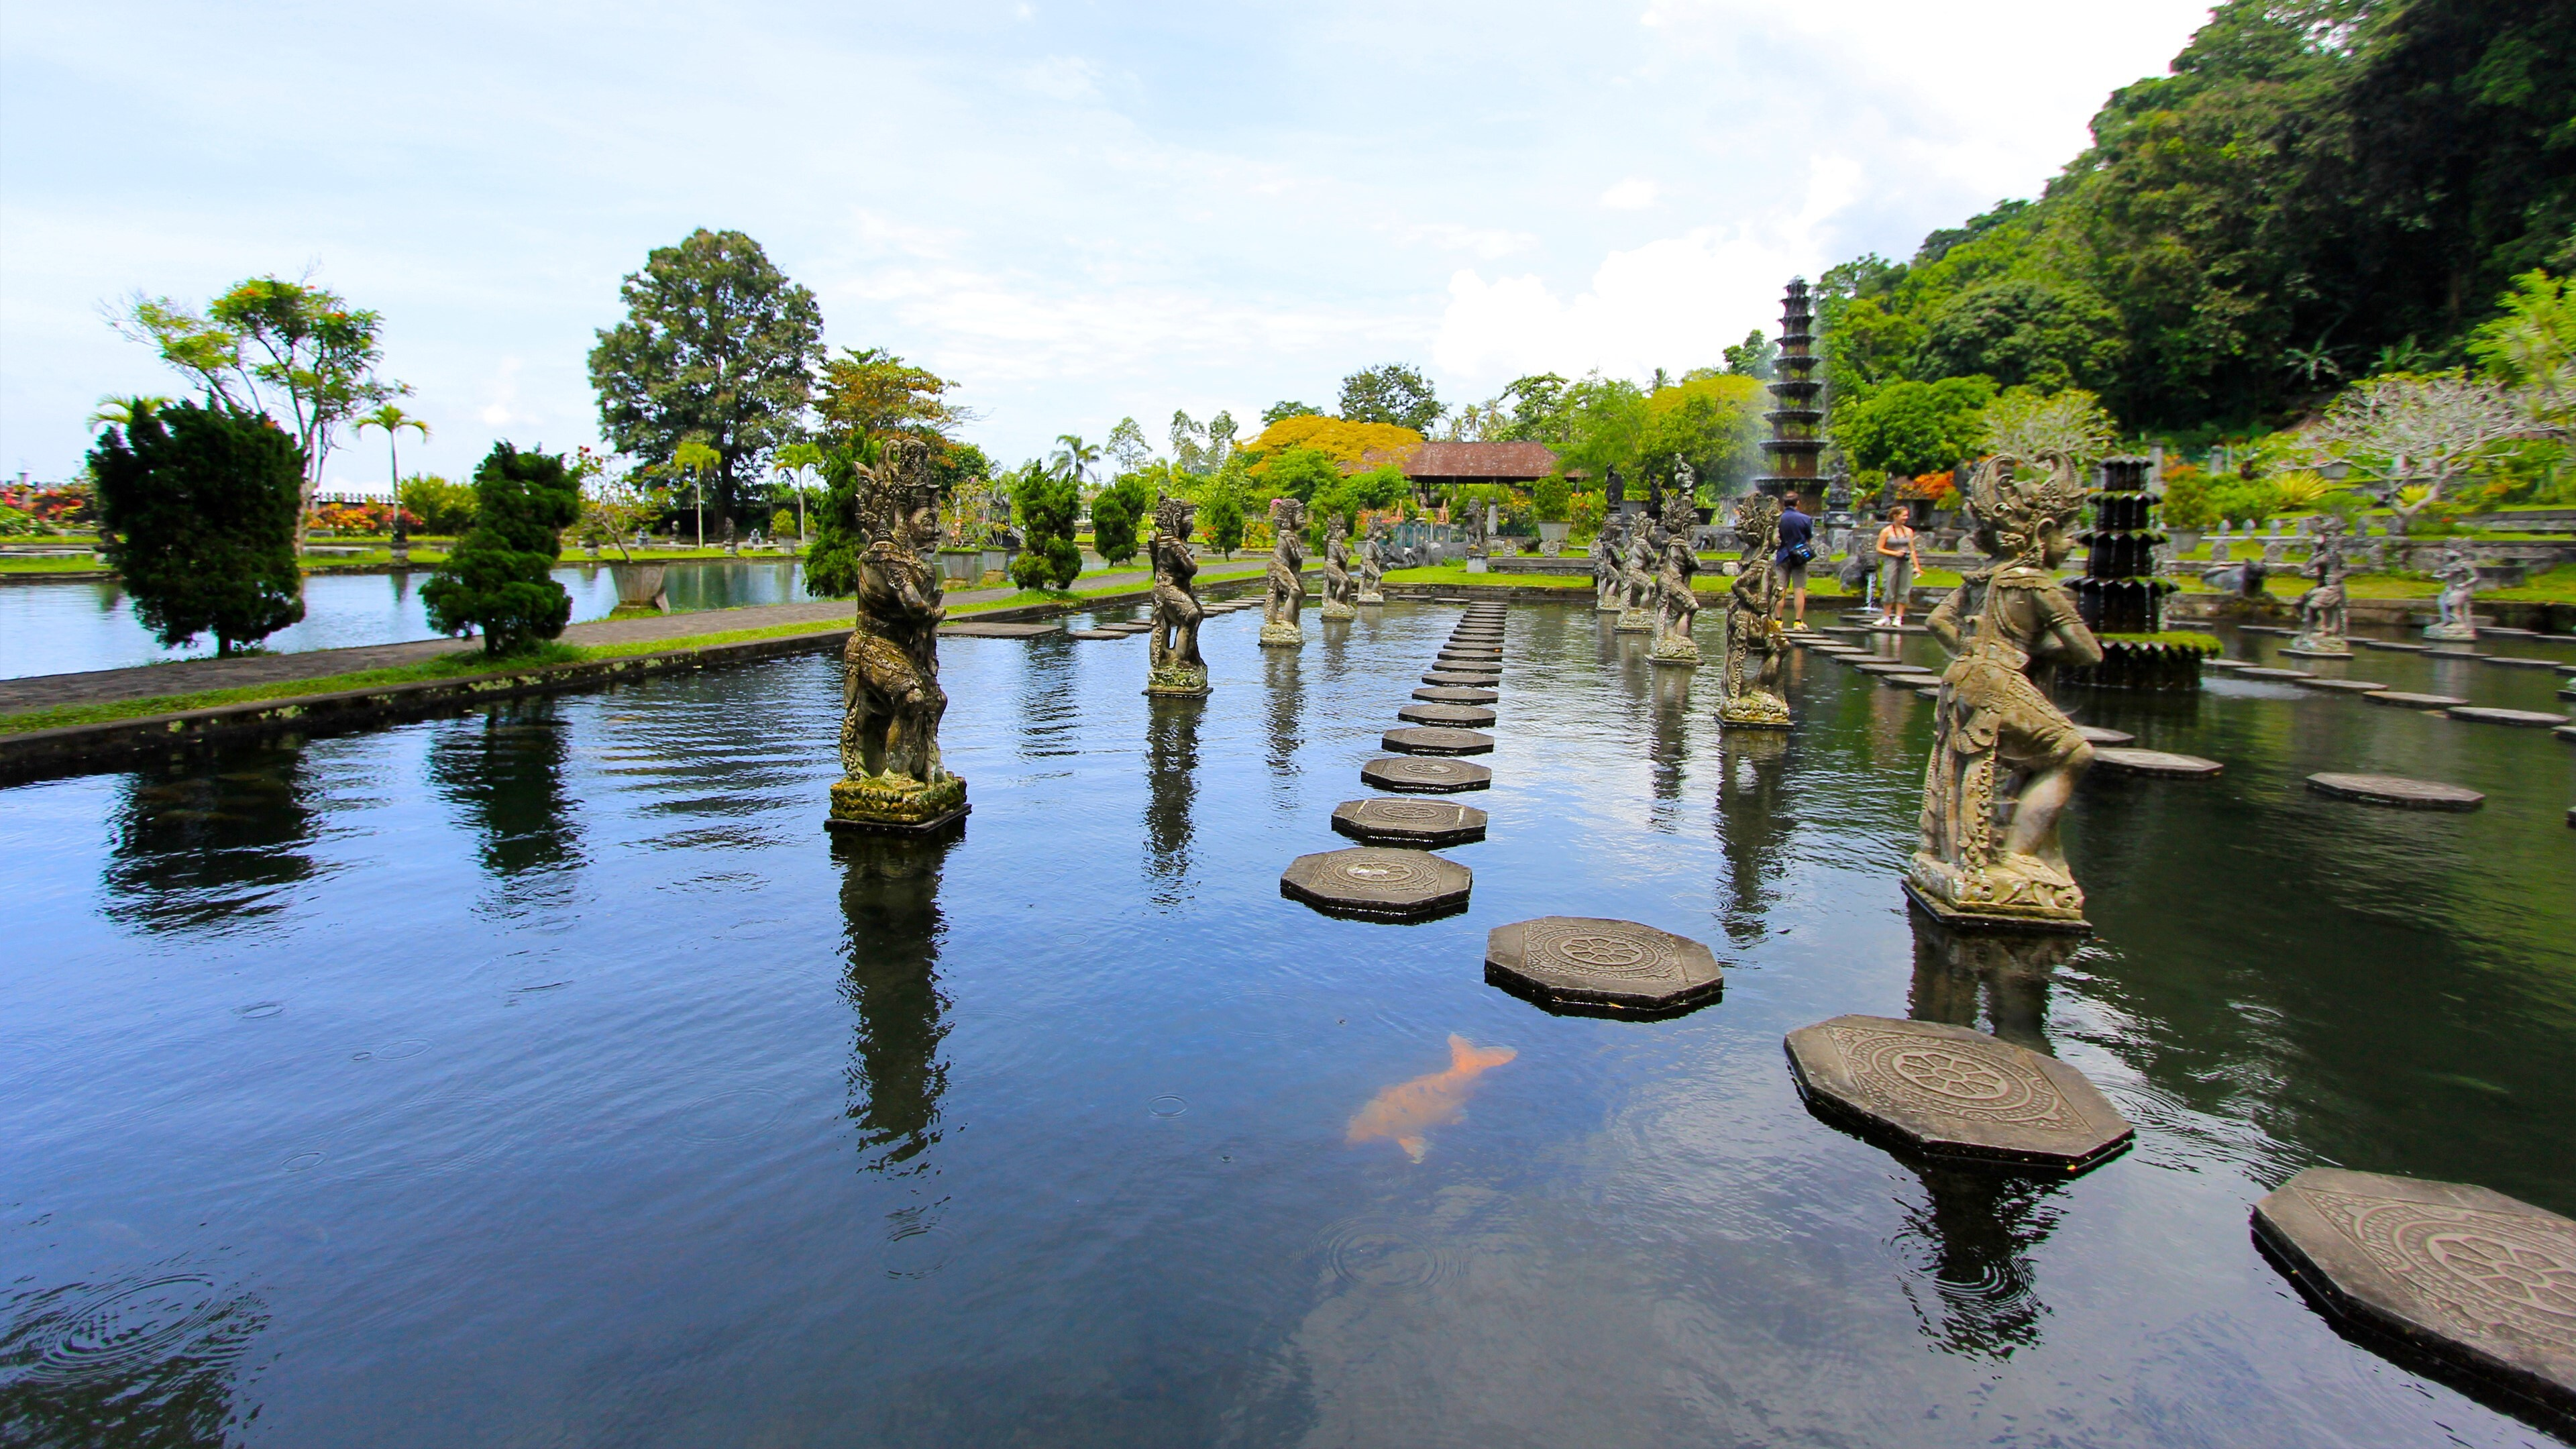 Tirta Gangga Tourist Place In Bali Indonesia 4k Wallpapers Hd Wallpapers